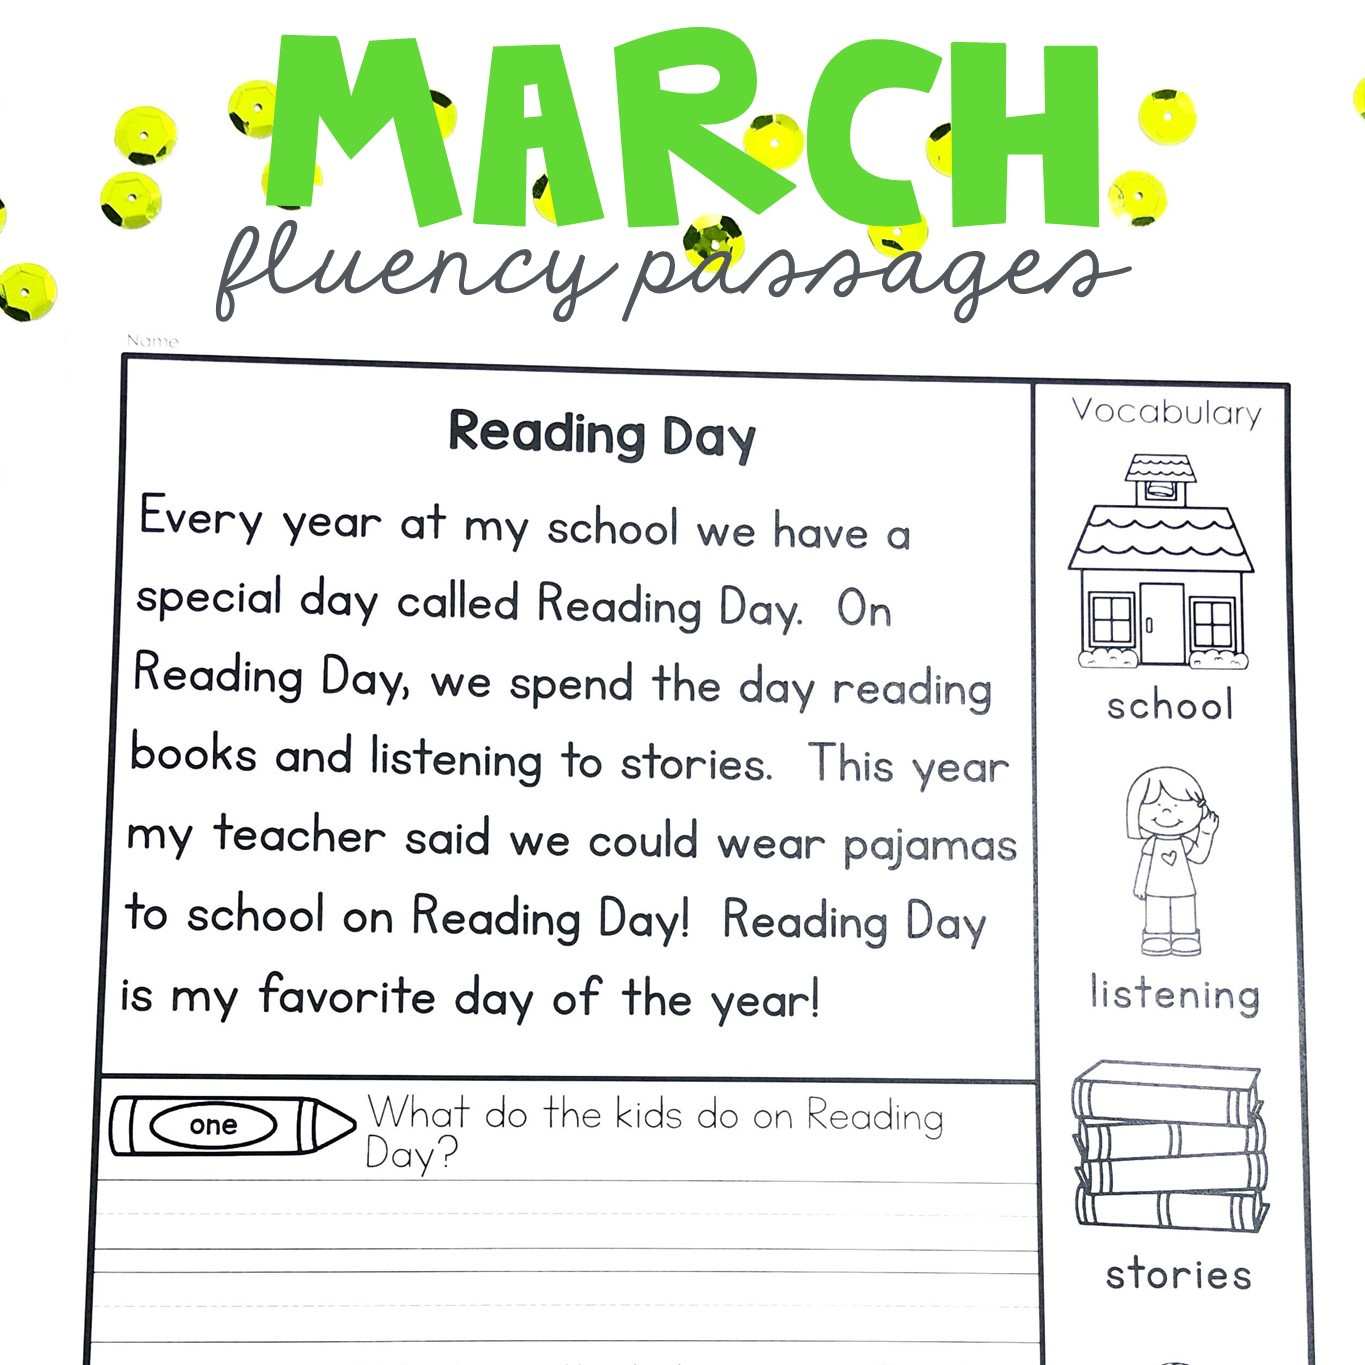 hight resolution of Reading Fluency 1st Grade Worksheets   Printable Worksheets and Activities  for Teachers